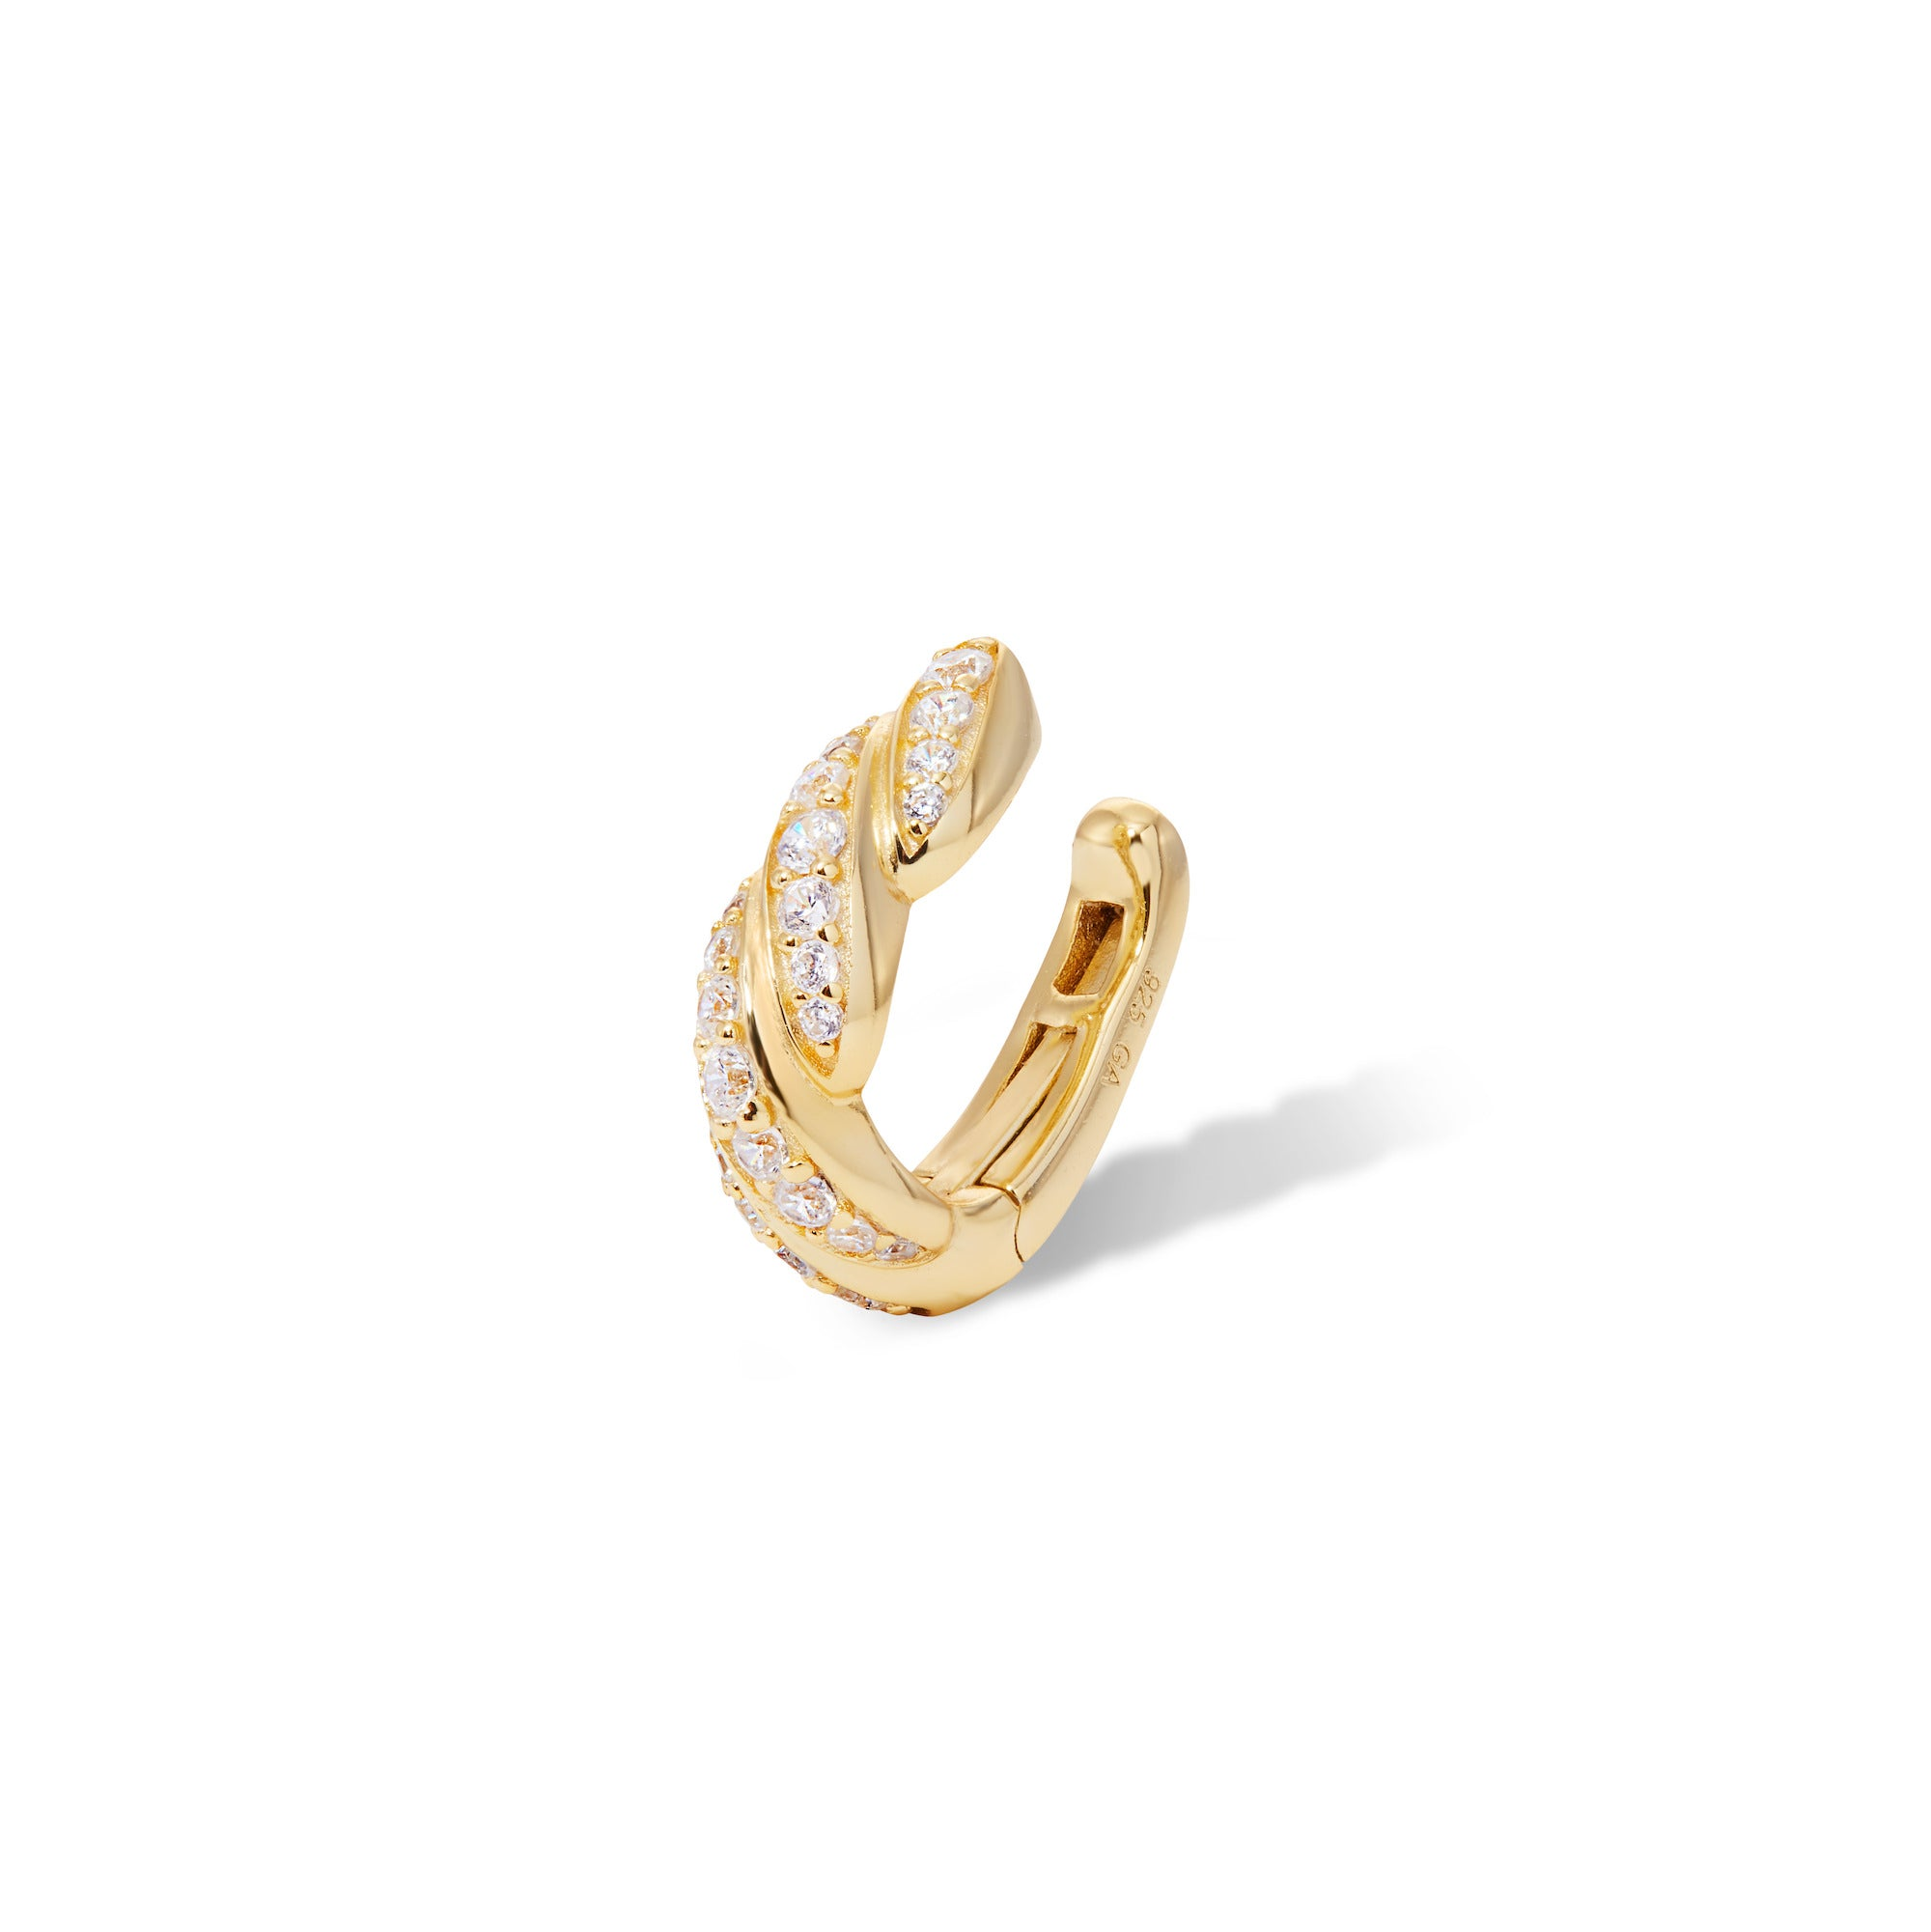 Speira band pave gold vermeil ear cuff